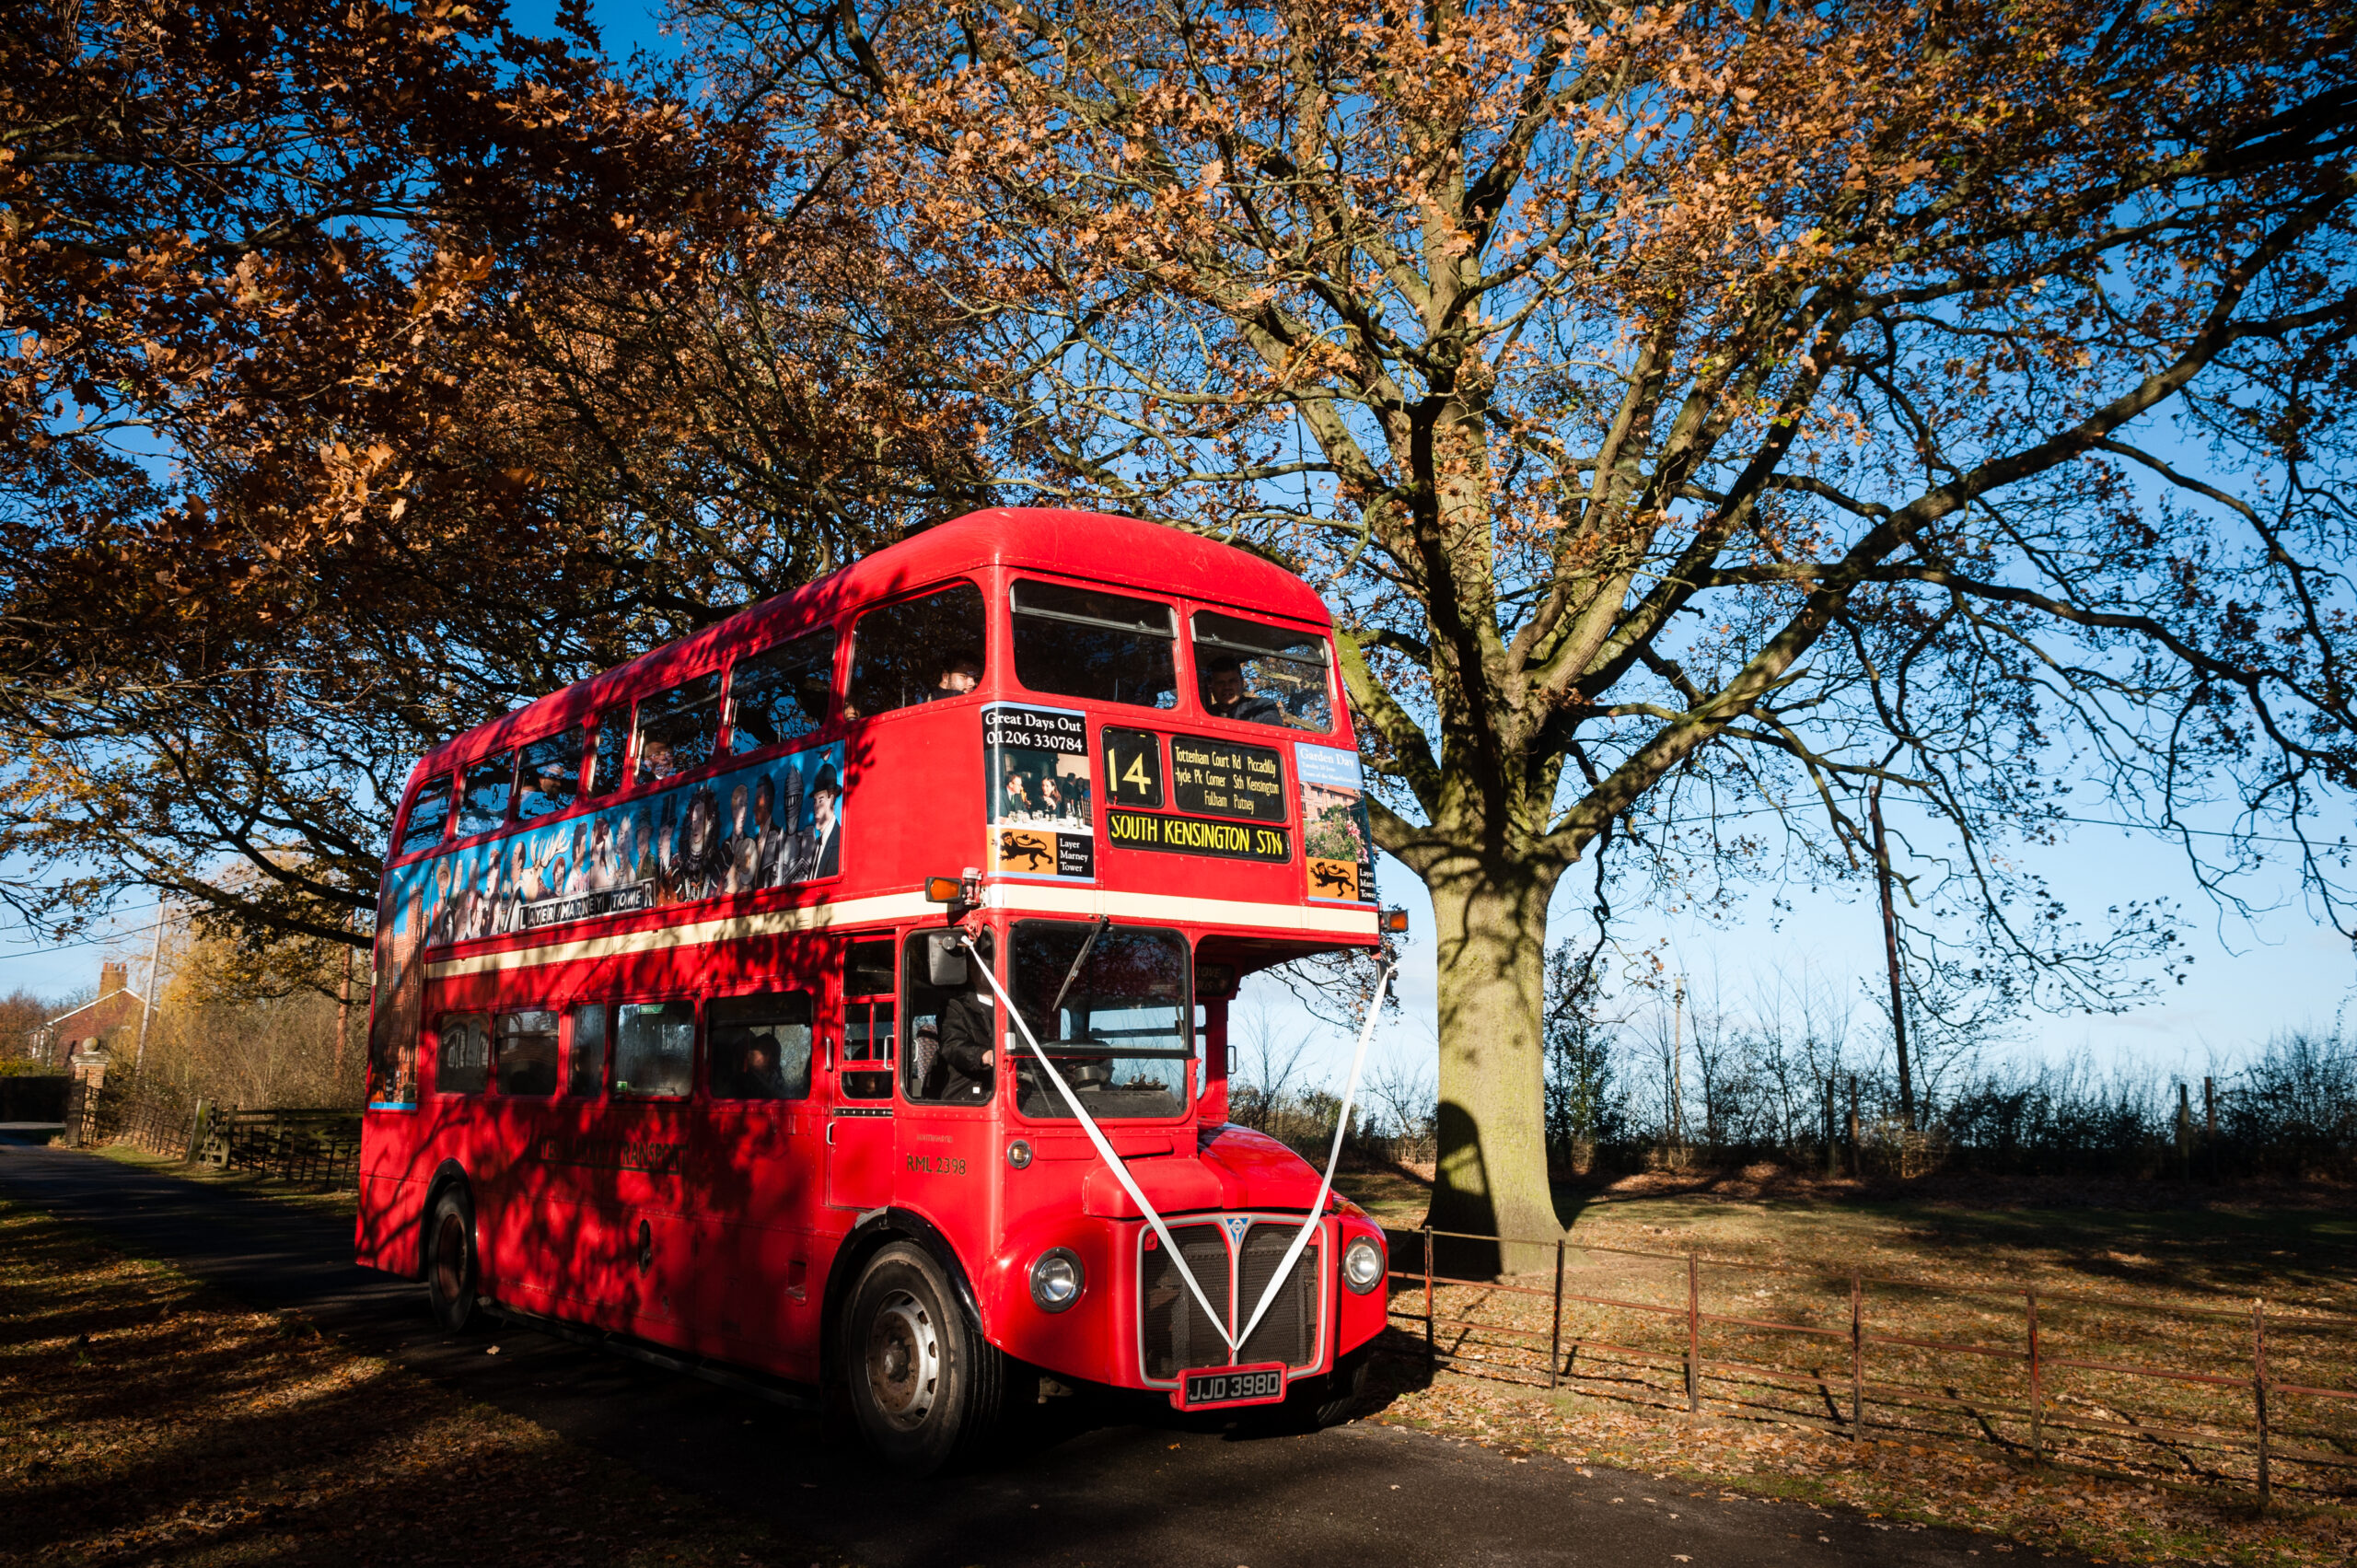 London Routemaster Bus, Traditional Red Bus